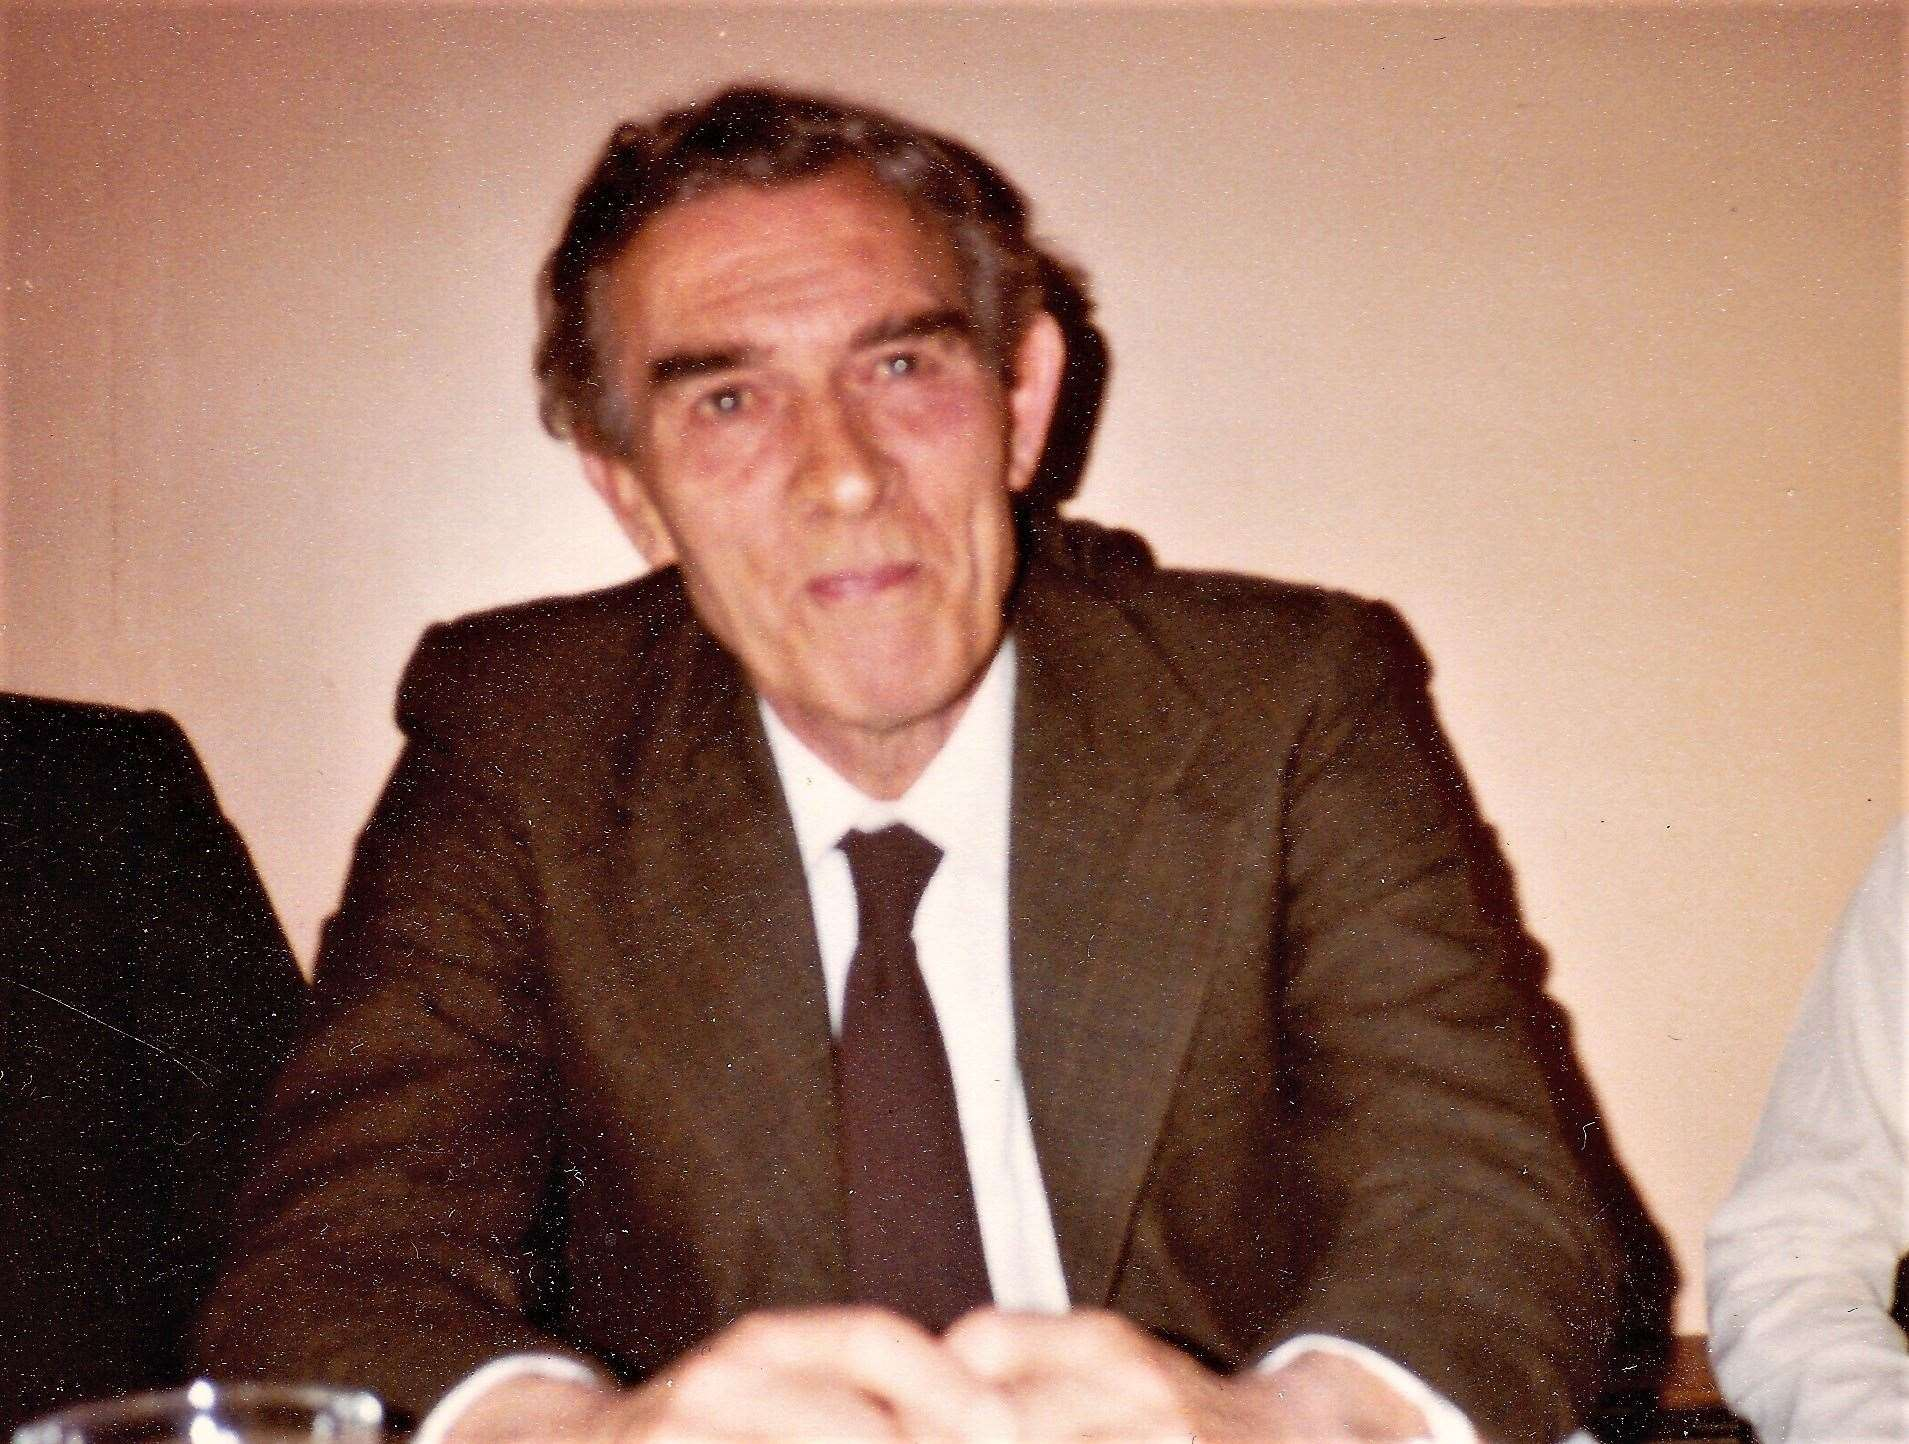 Ron pictured in 1980